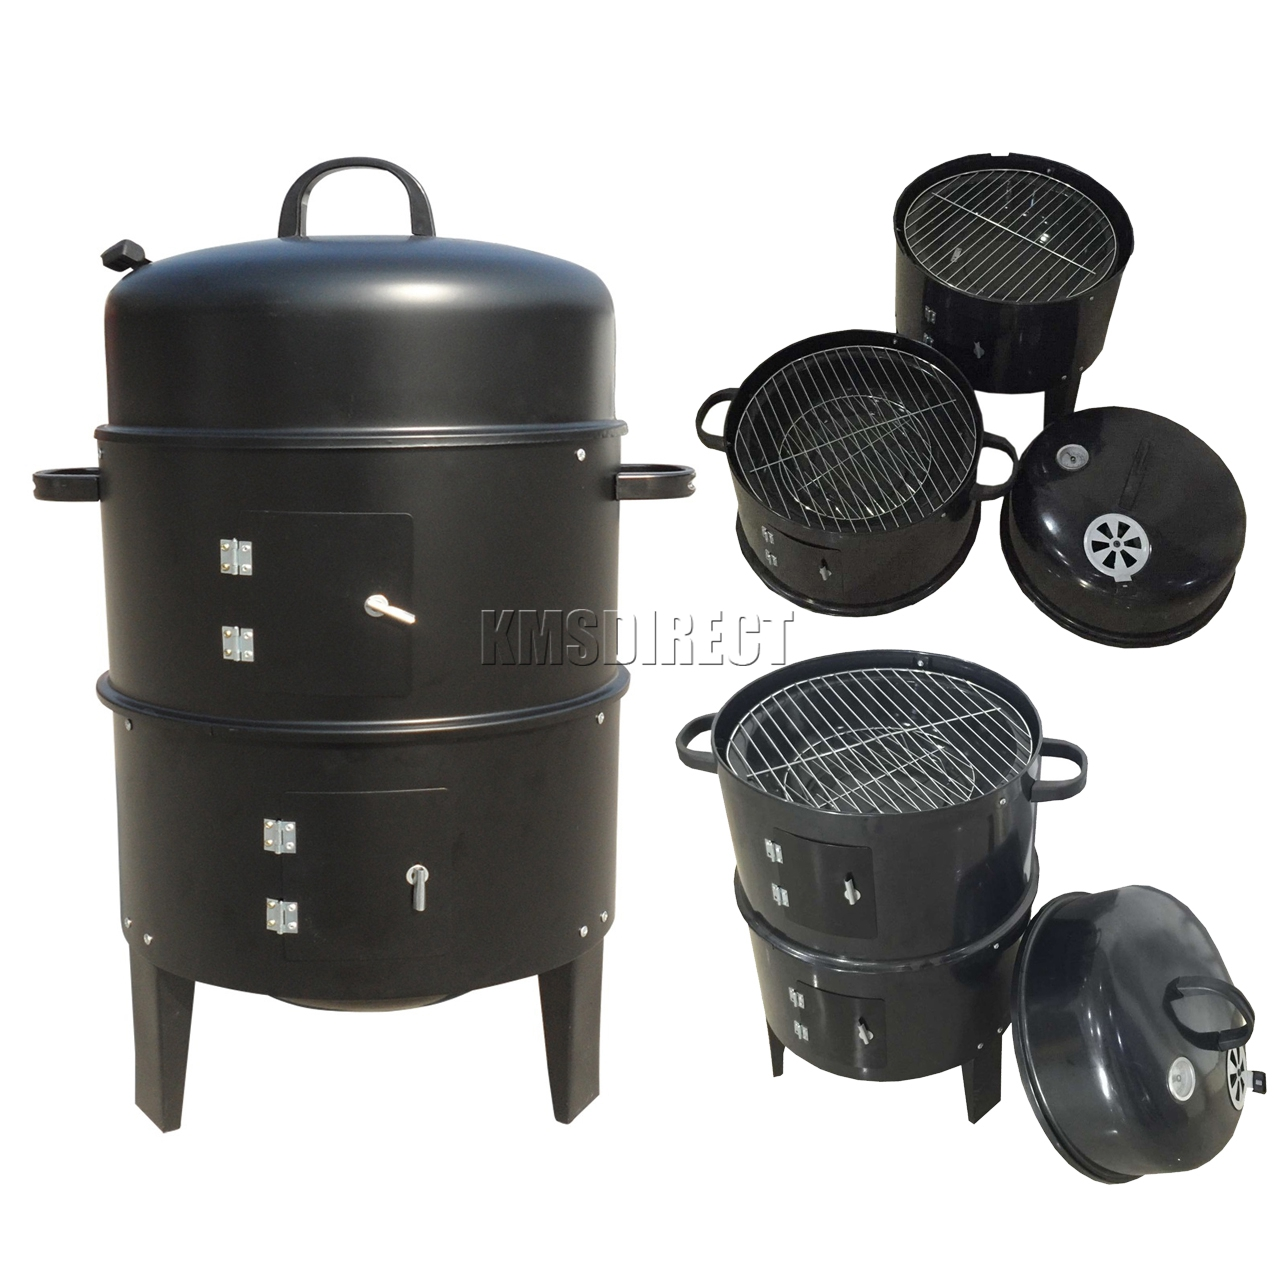 Foxhunter Black Bbq Charcoal Grill Barbecue Smoker Garden